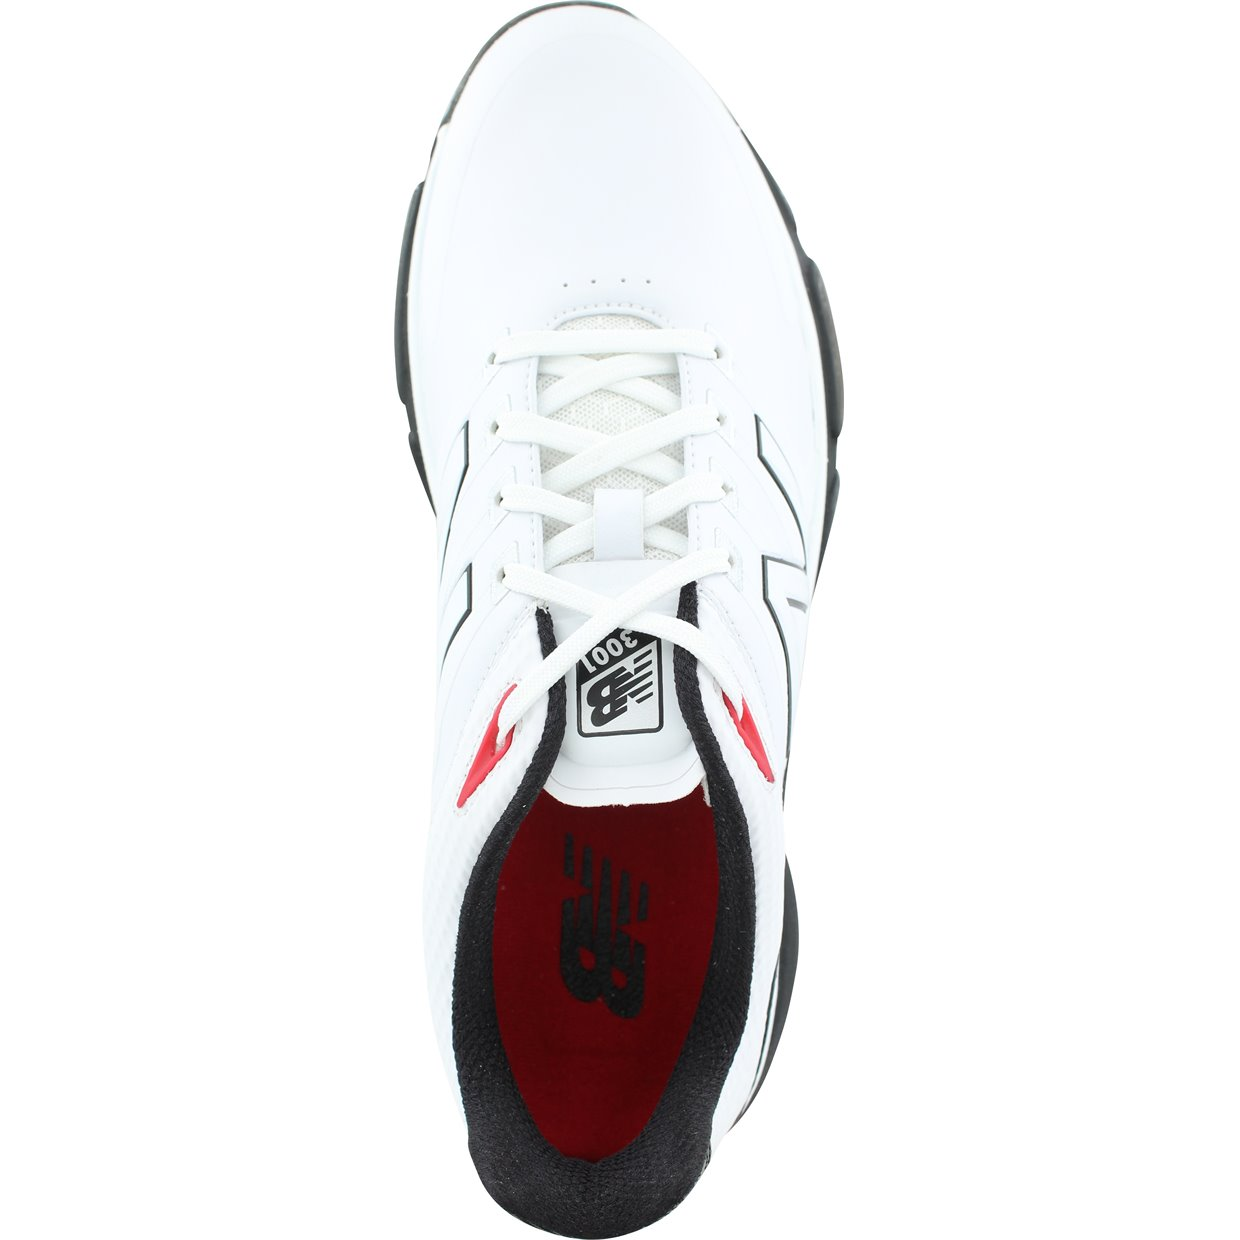 d5f48fc660eed New Balance NB Tour Golf Shoe Shoes · Alternate Product Image of Right Shoe  Side Angle Alternate Product Image of Top View ...